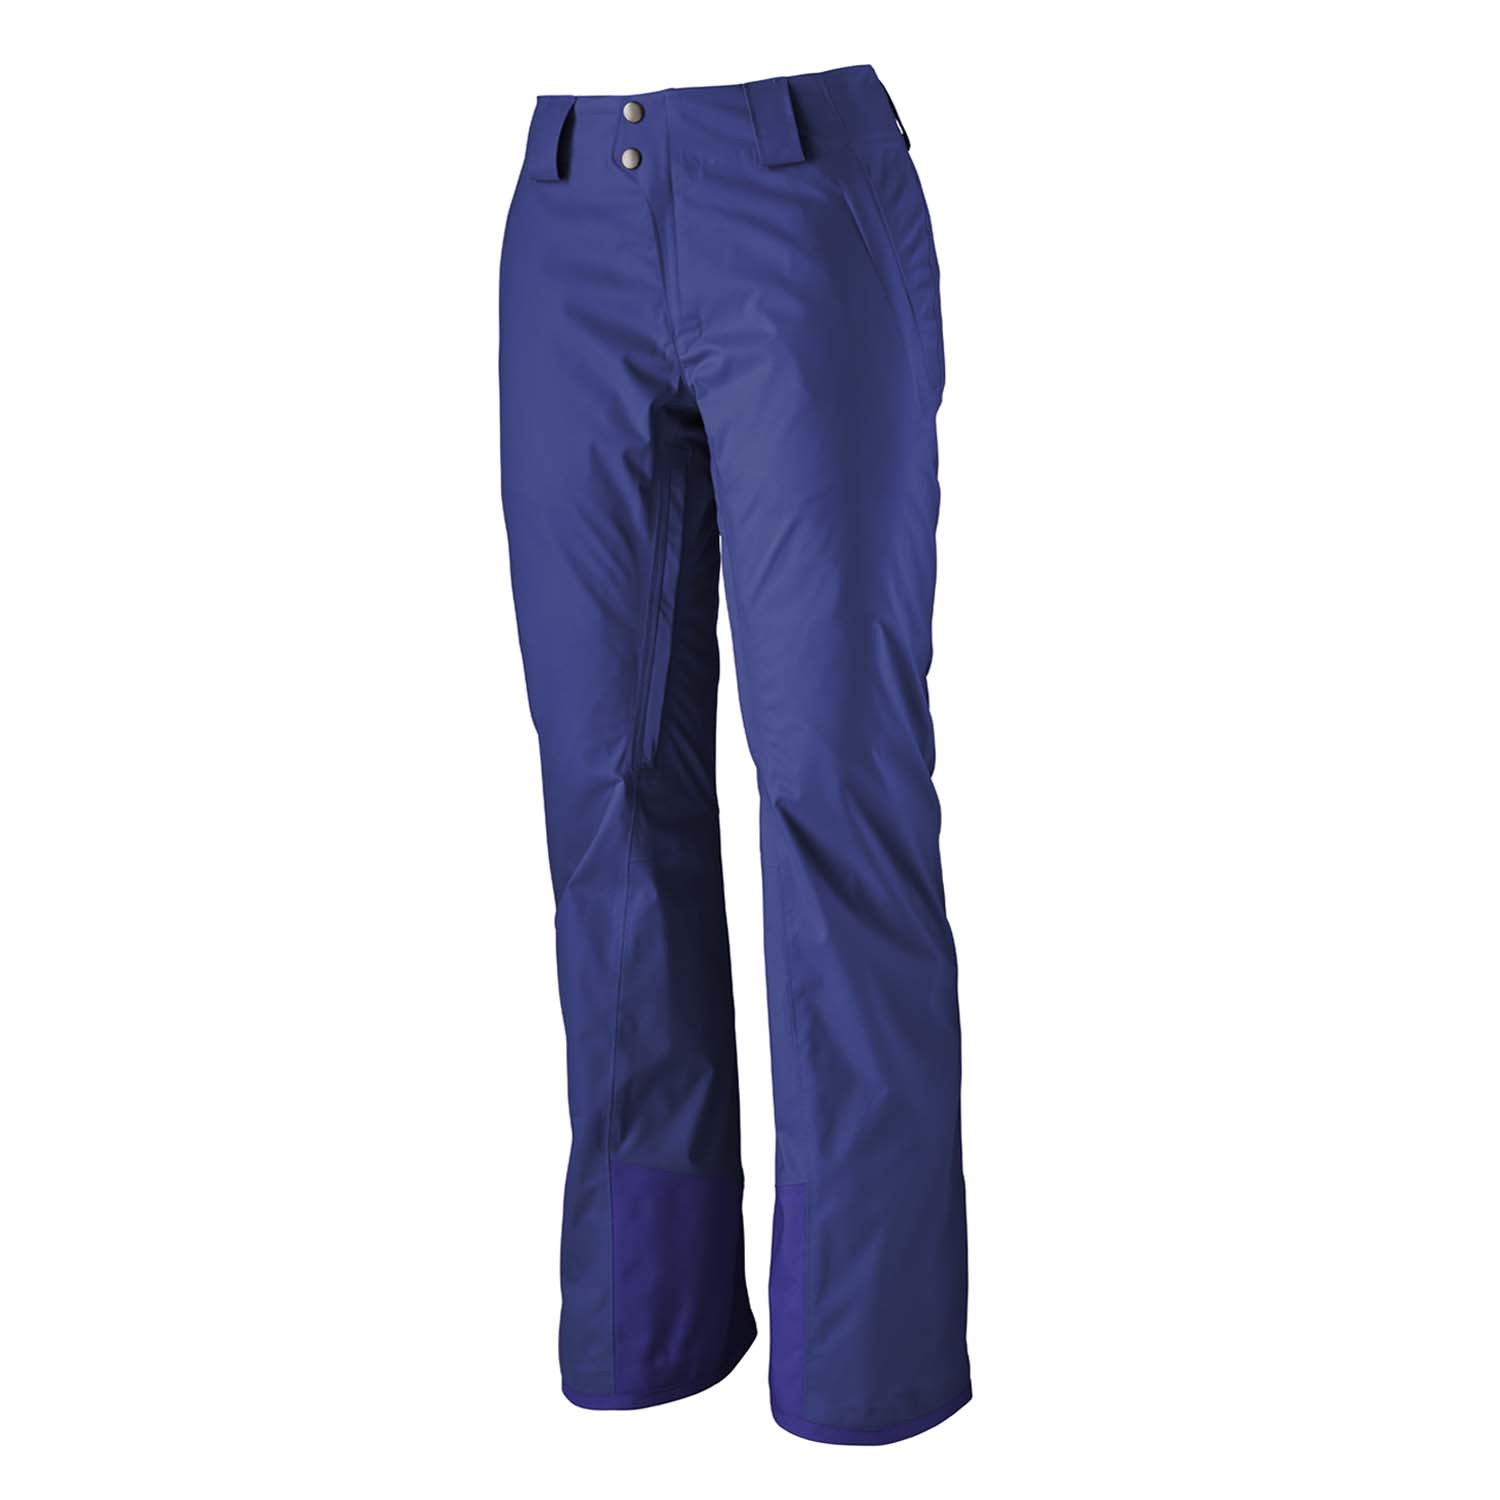 Patagonia Womens Snowbelle Stretch Pants Cobalt Blue 2020